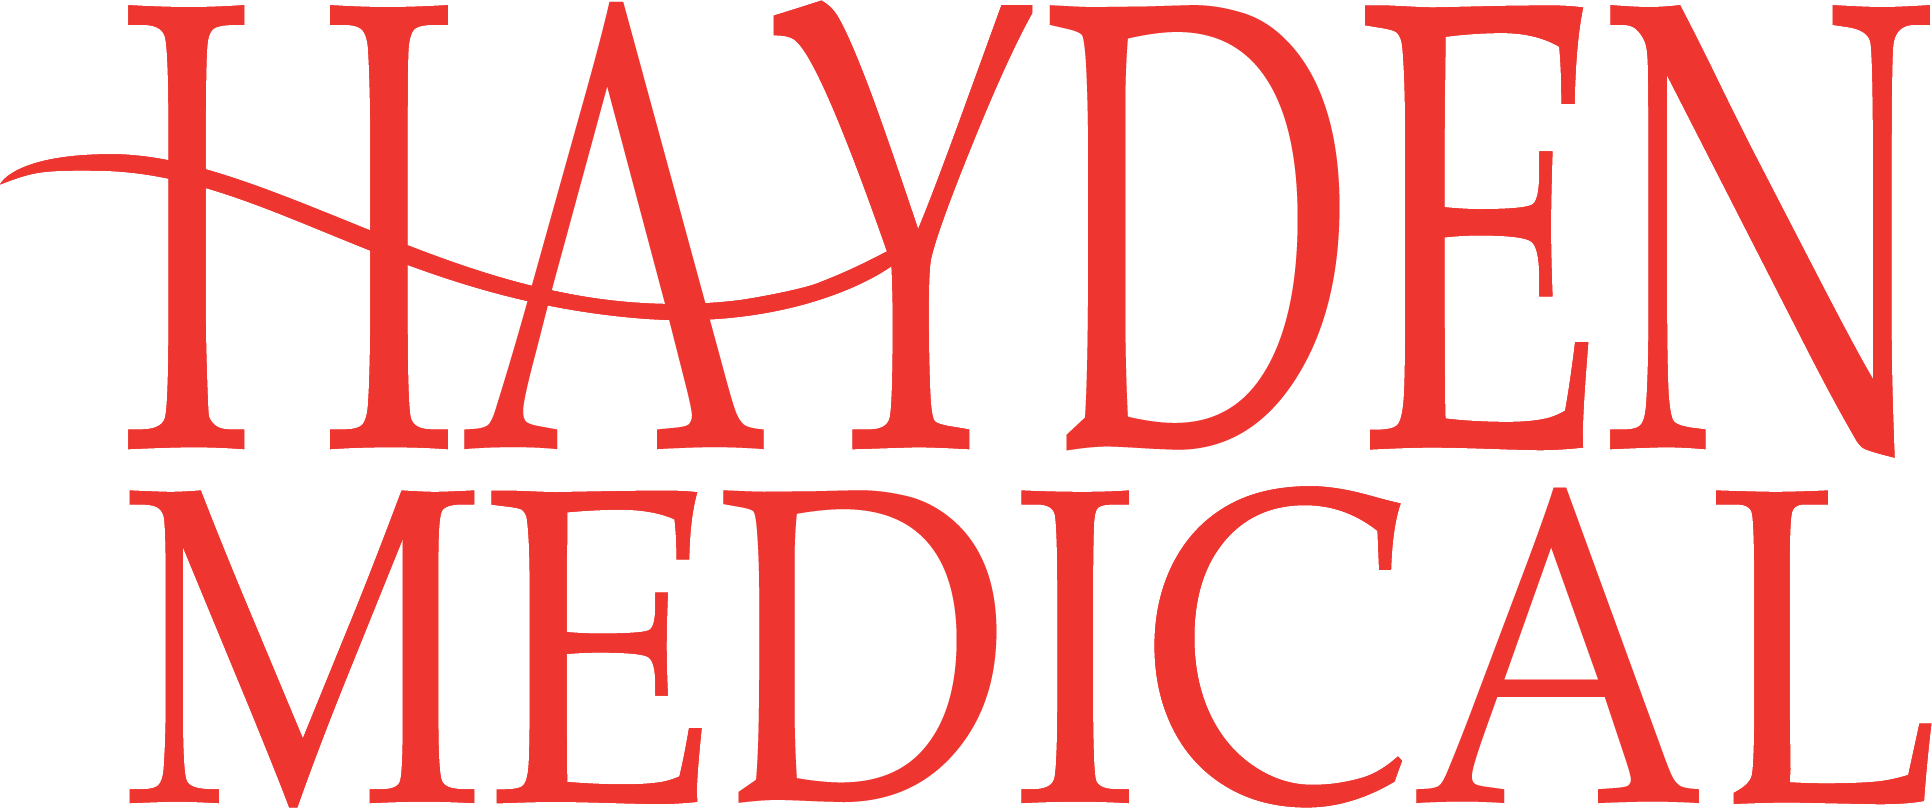 Hayden Medical, Inc